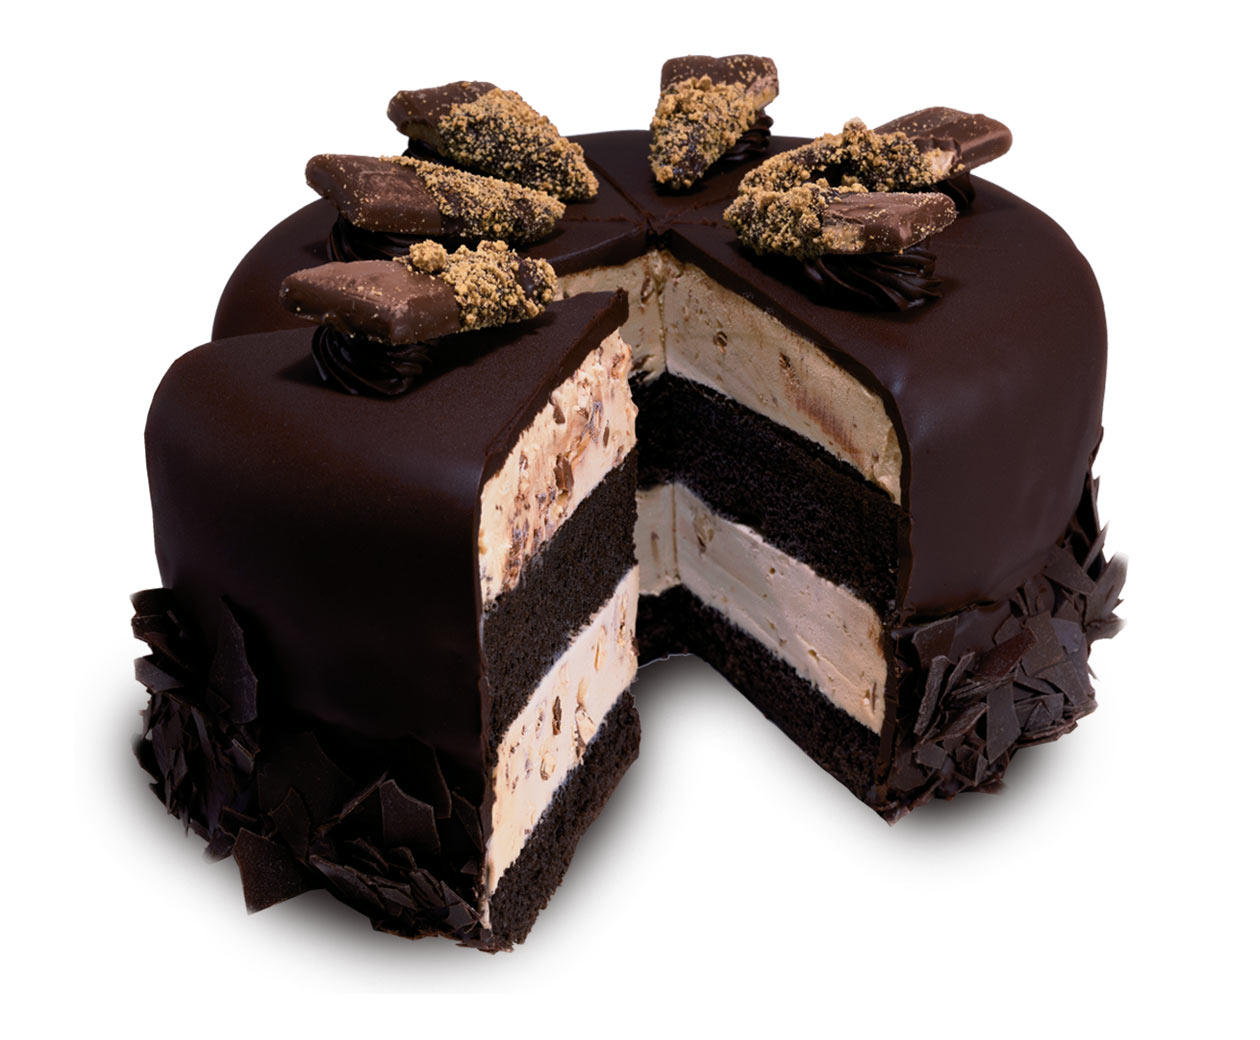 Publix Chocolate Ice Cream Cake